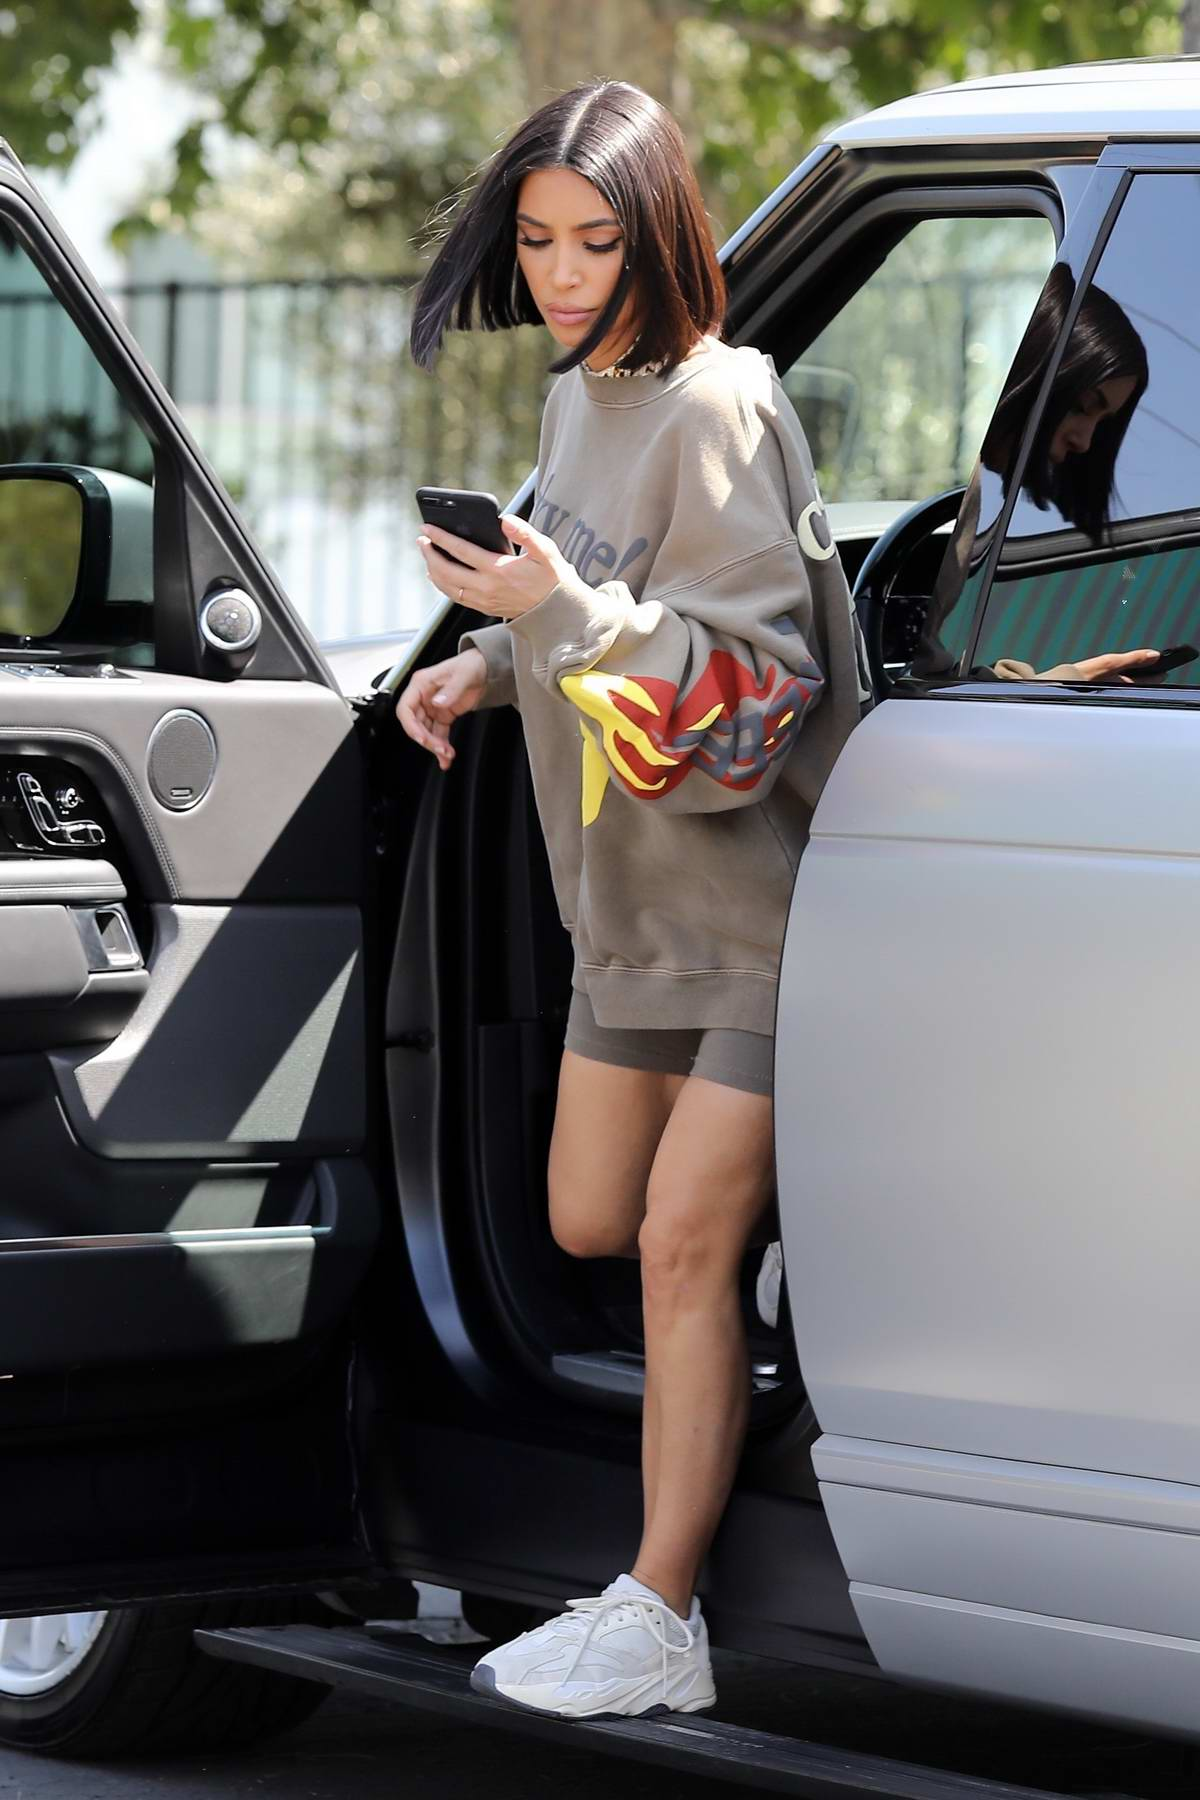 Kim Kardashian wears an oversized sweatshirt and shorts as she heads to a meeting at Kylie's office in Calabasas, California